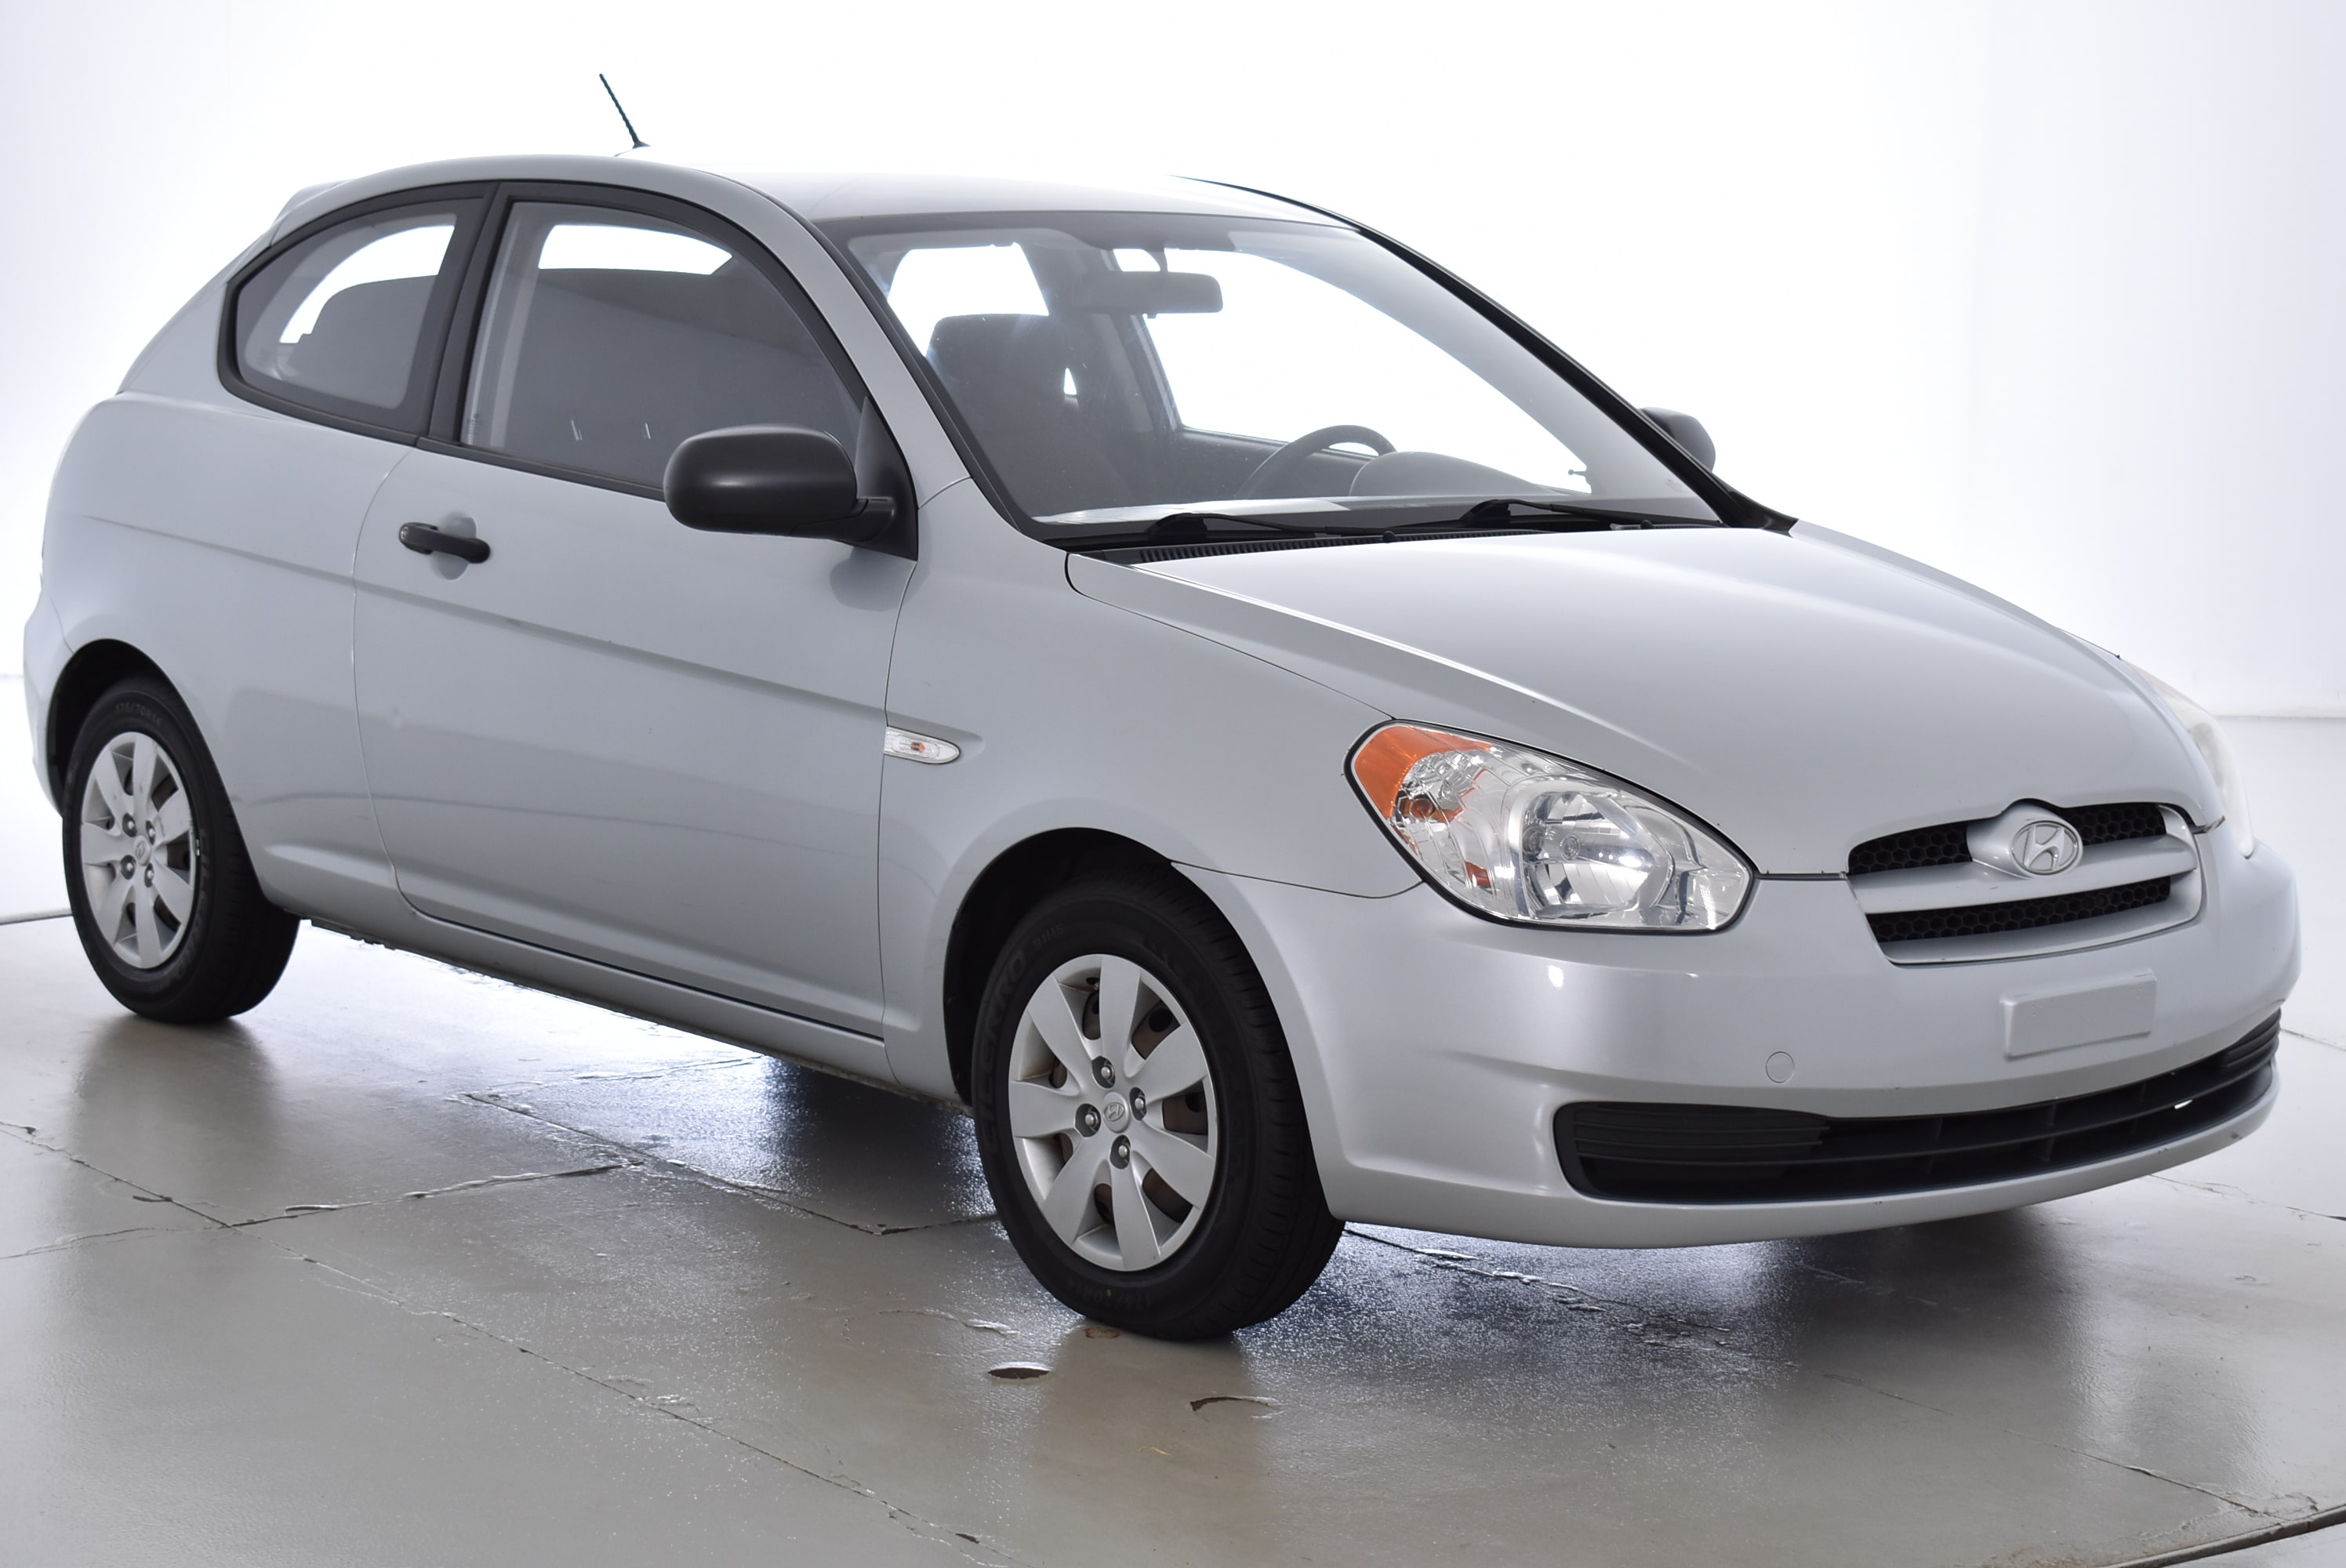 2010 Hyundai Accent Hatchback